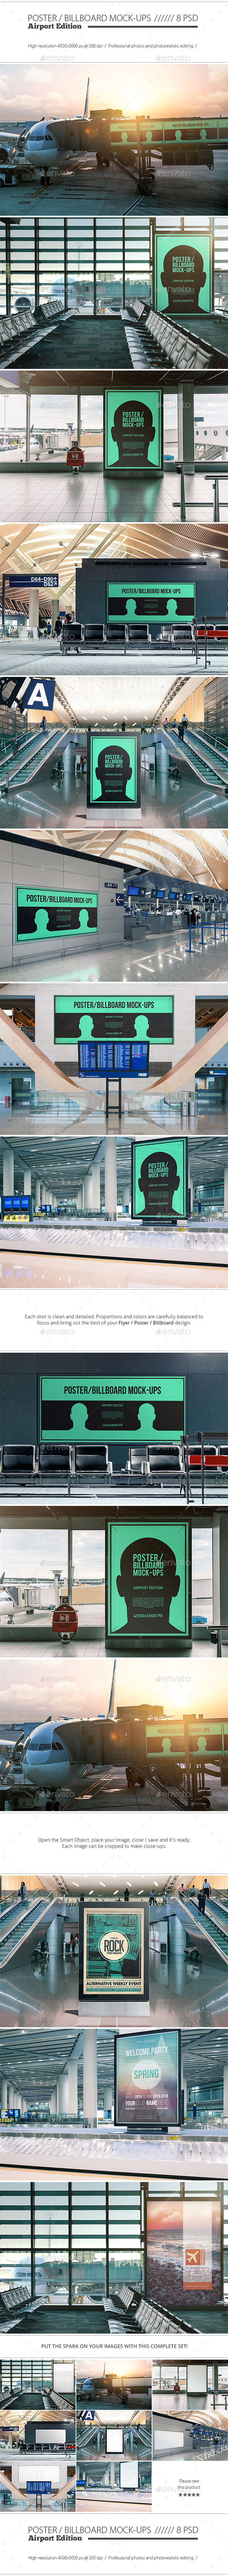 Poster Billboard Mock-ups Airport Edition